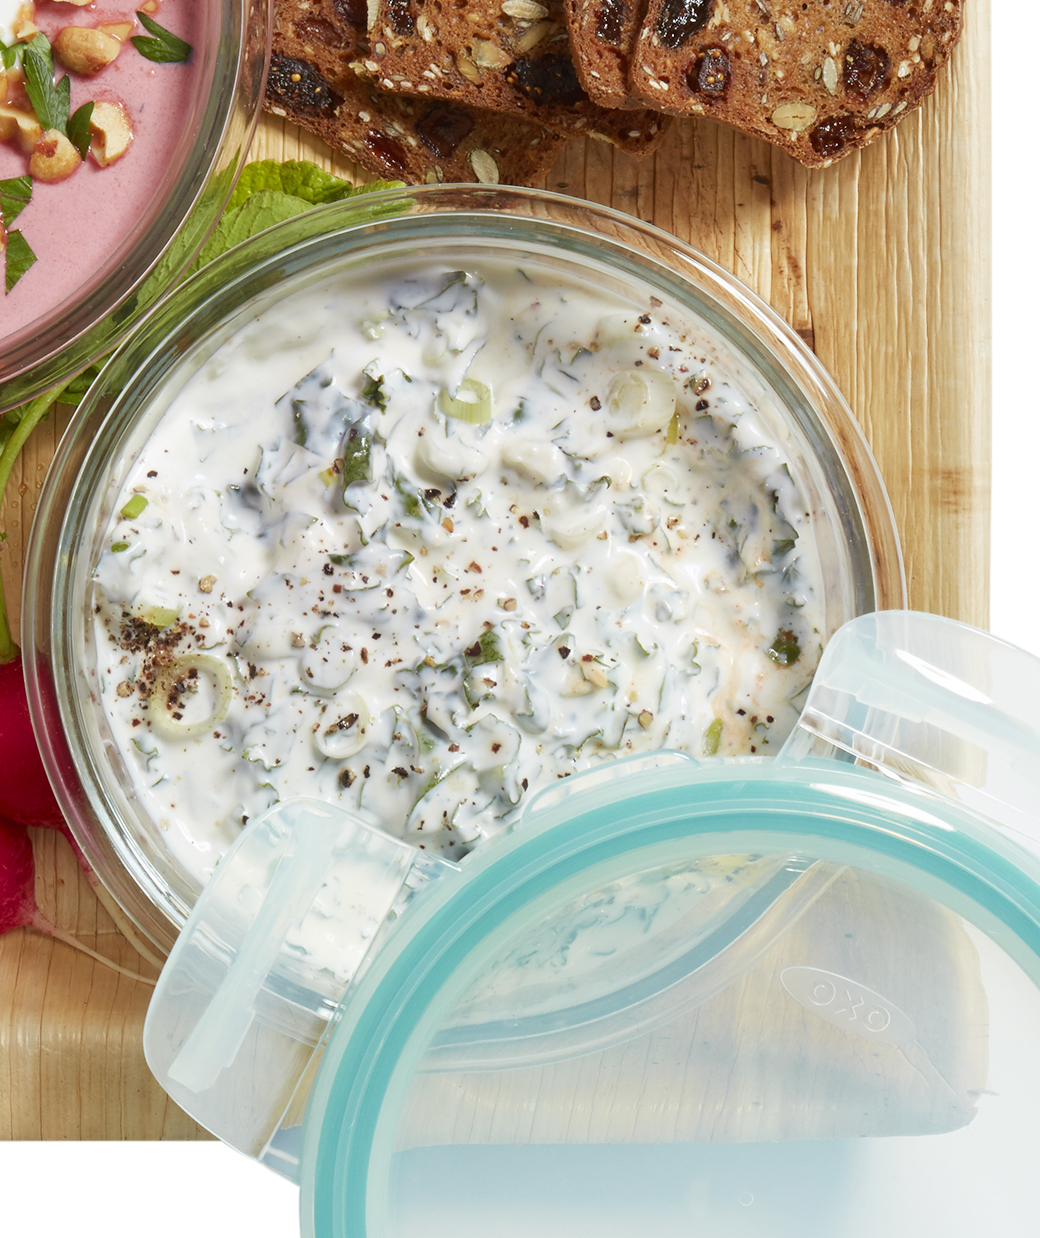 Buttermilk Ranch and Kale Dip